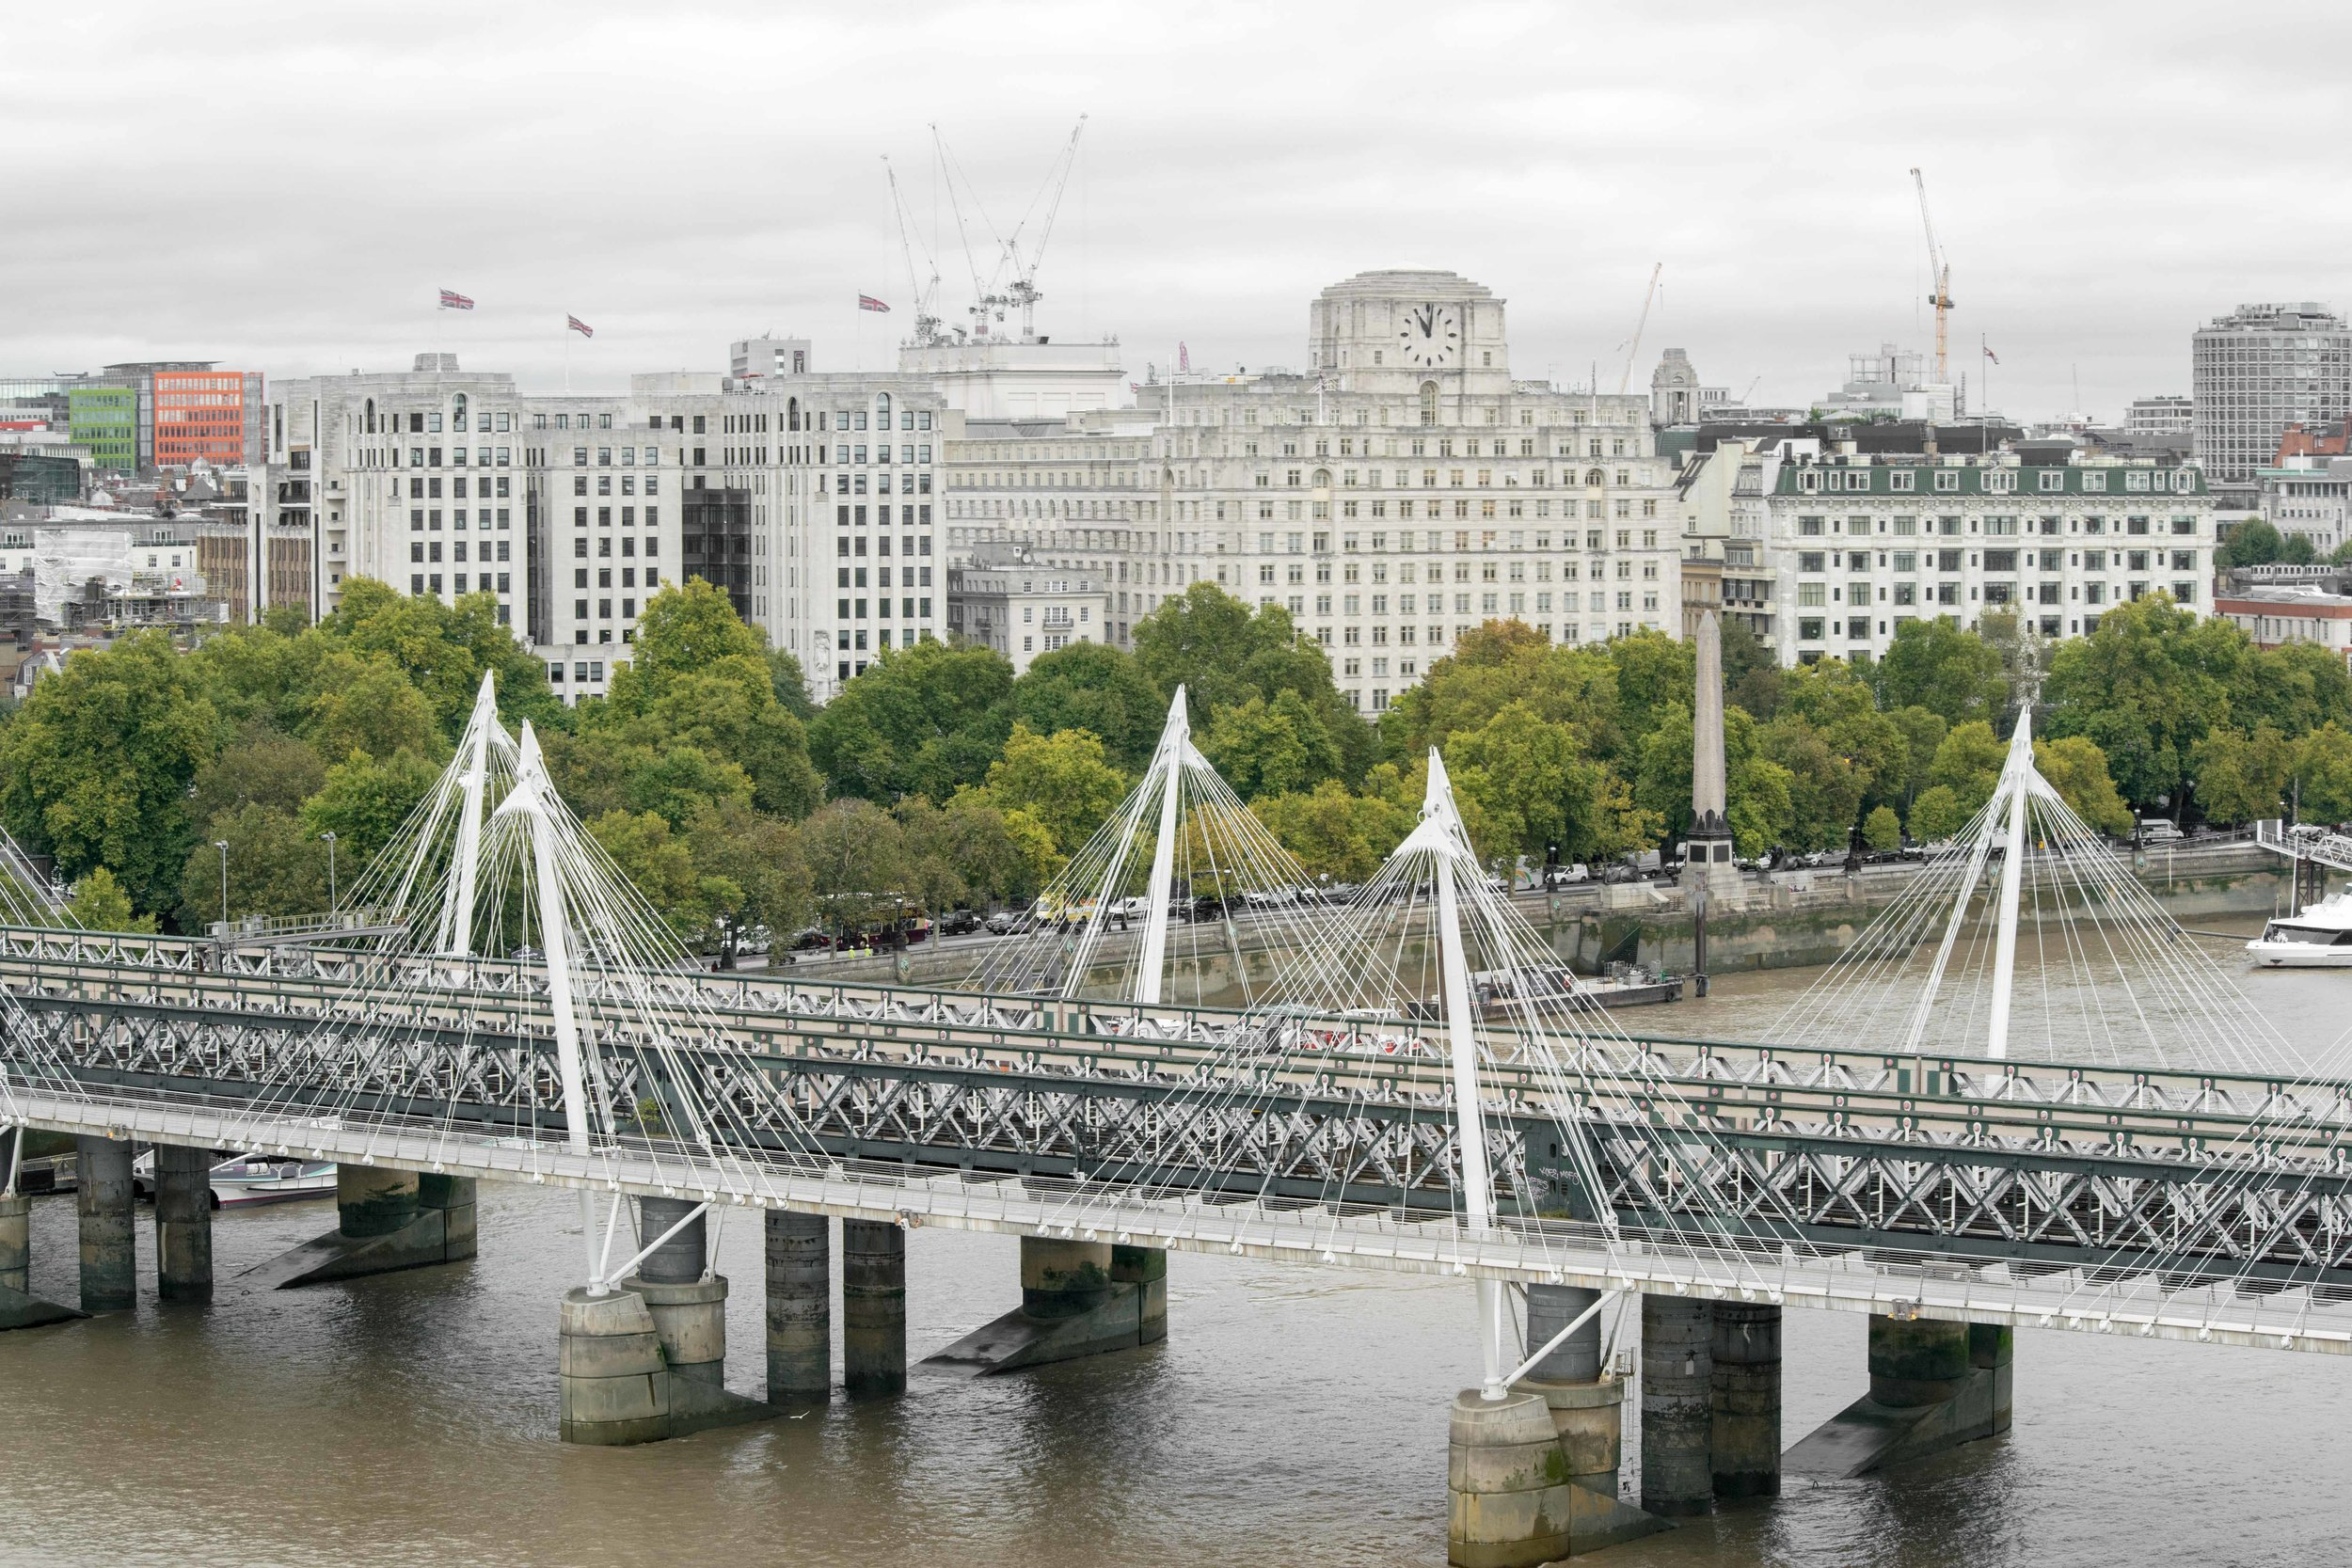 Hungerford Bridge and Golden Jubilee Bridges as seen from the London Eye